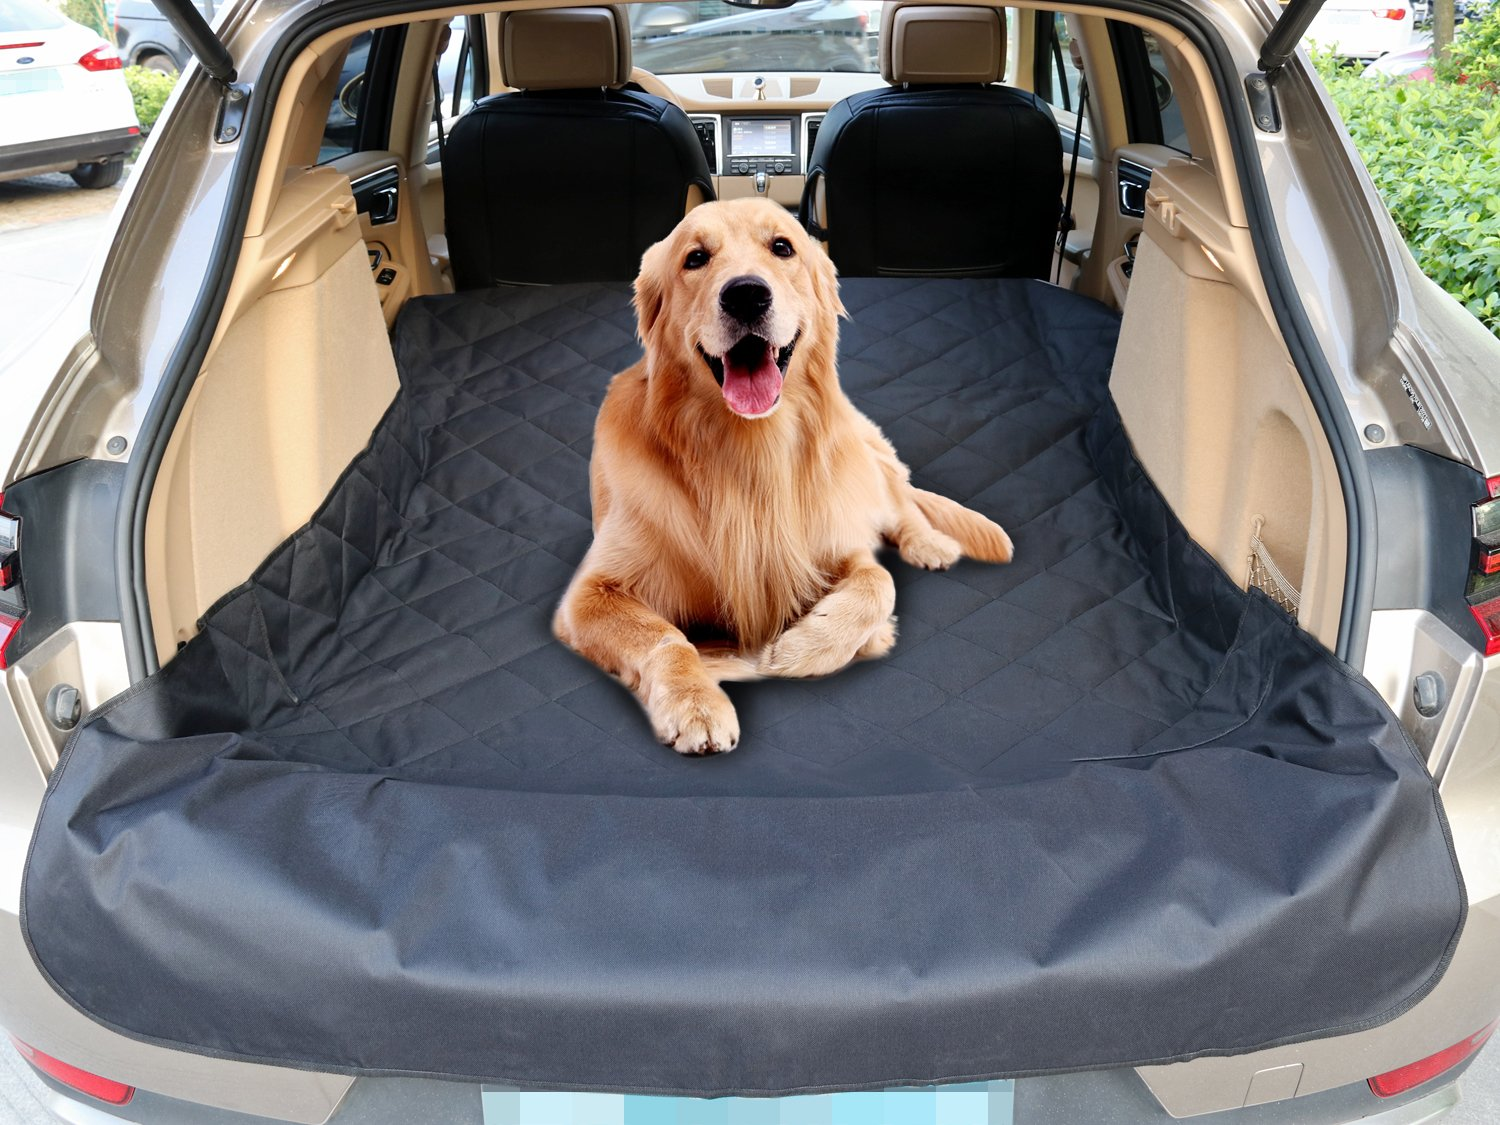 Amazon SUV Cargo Liner Cover For SUVs Cars Waterproof Non Slip Backing Extra Bumper Flap Protector By MixMart Black Pet Supplies